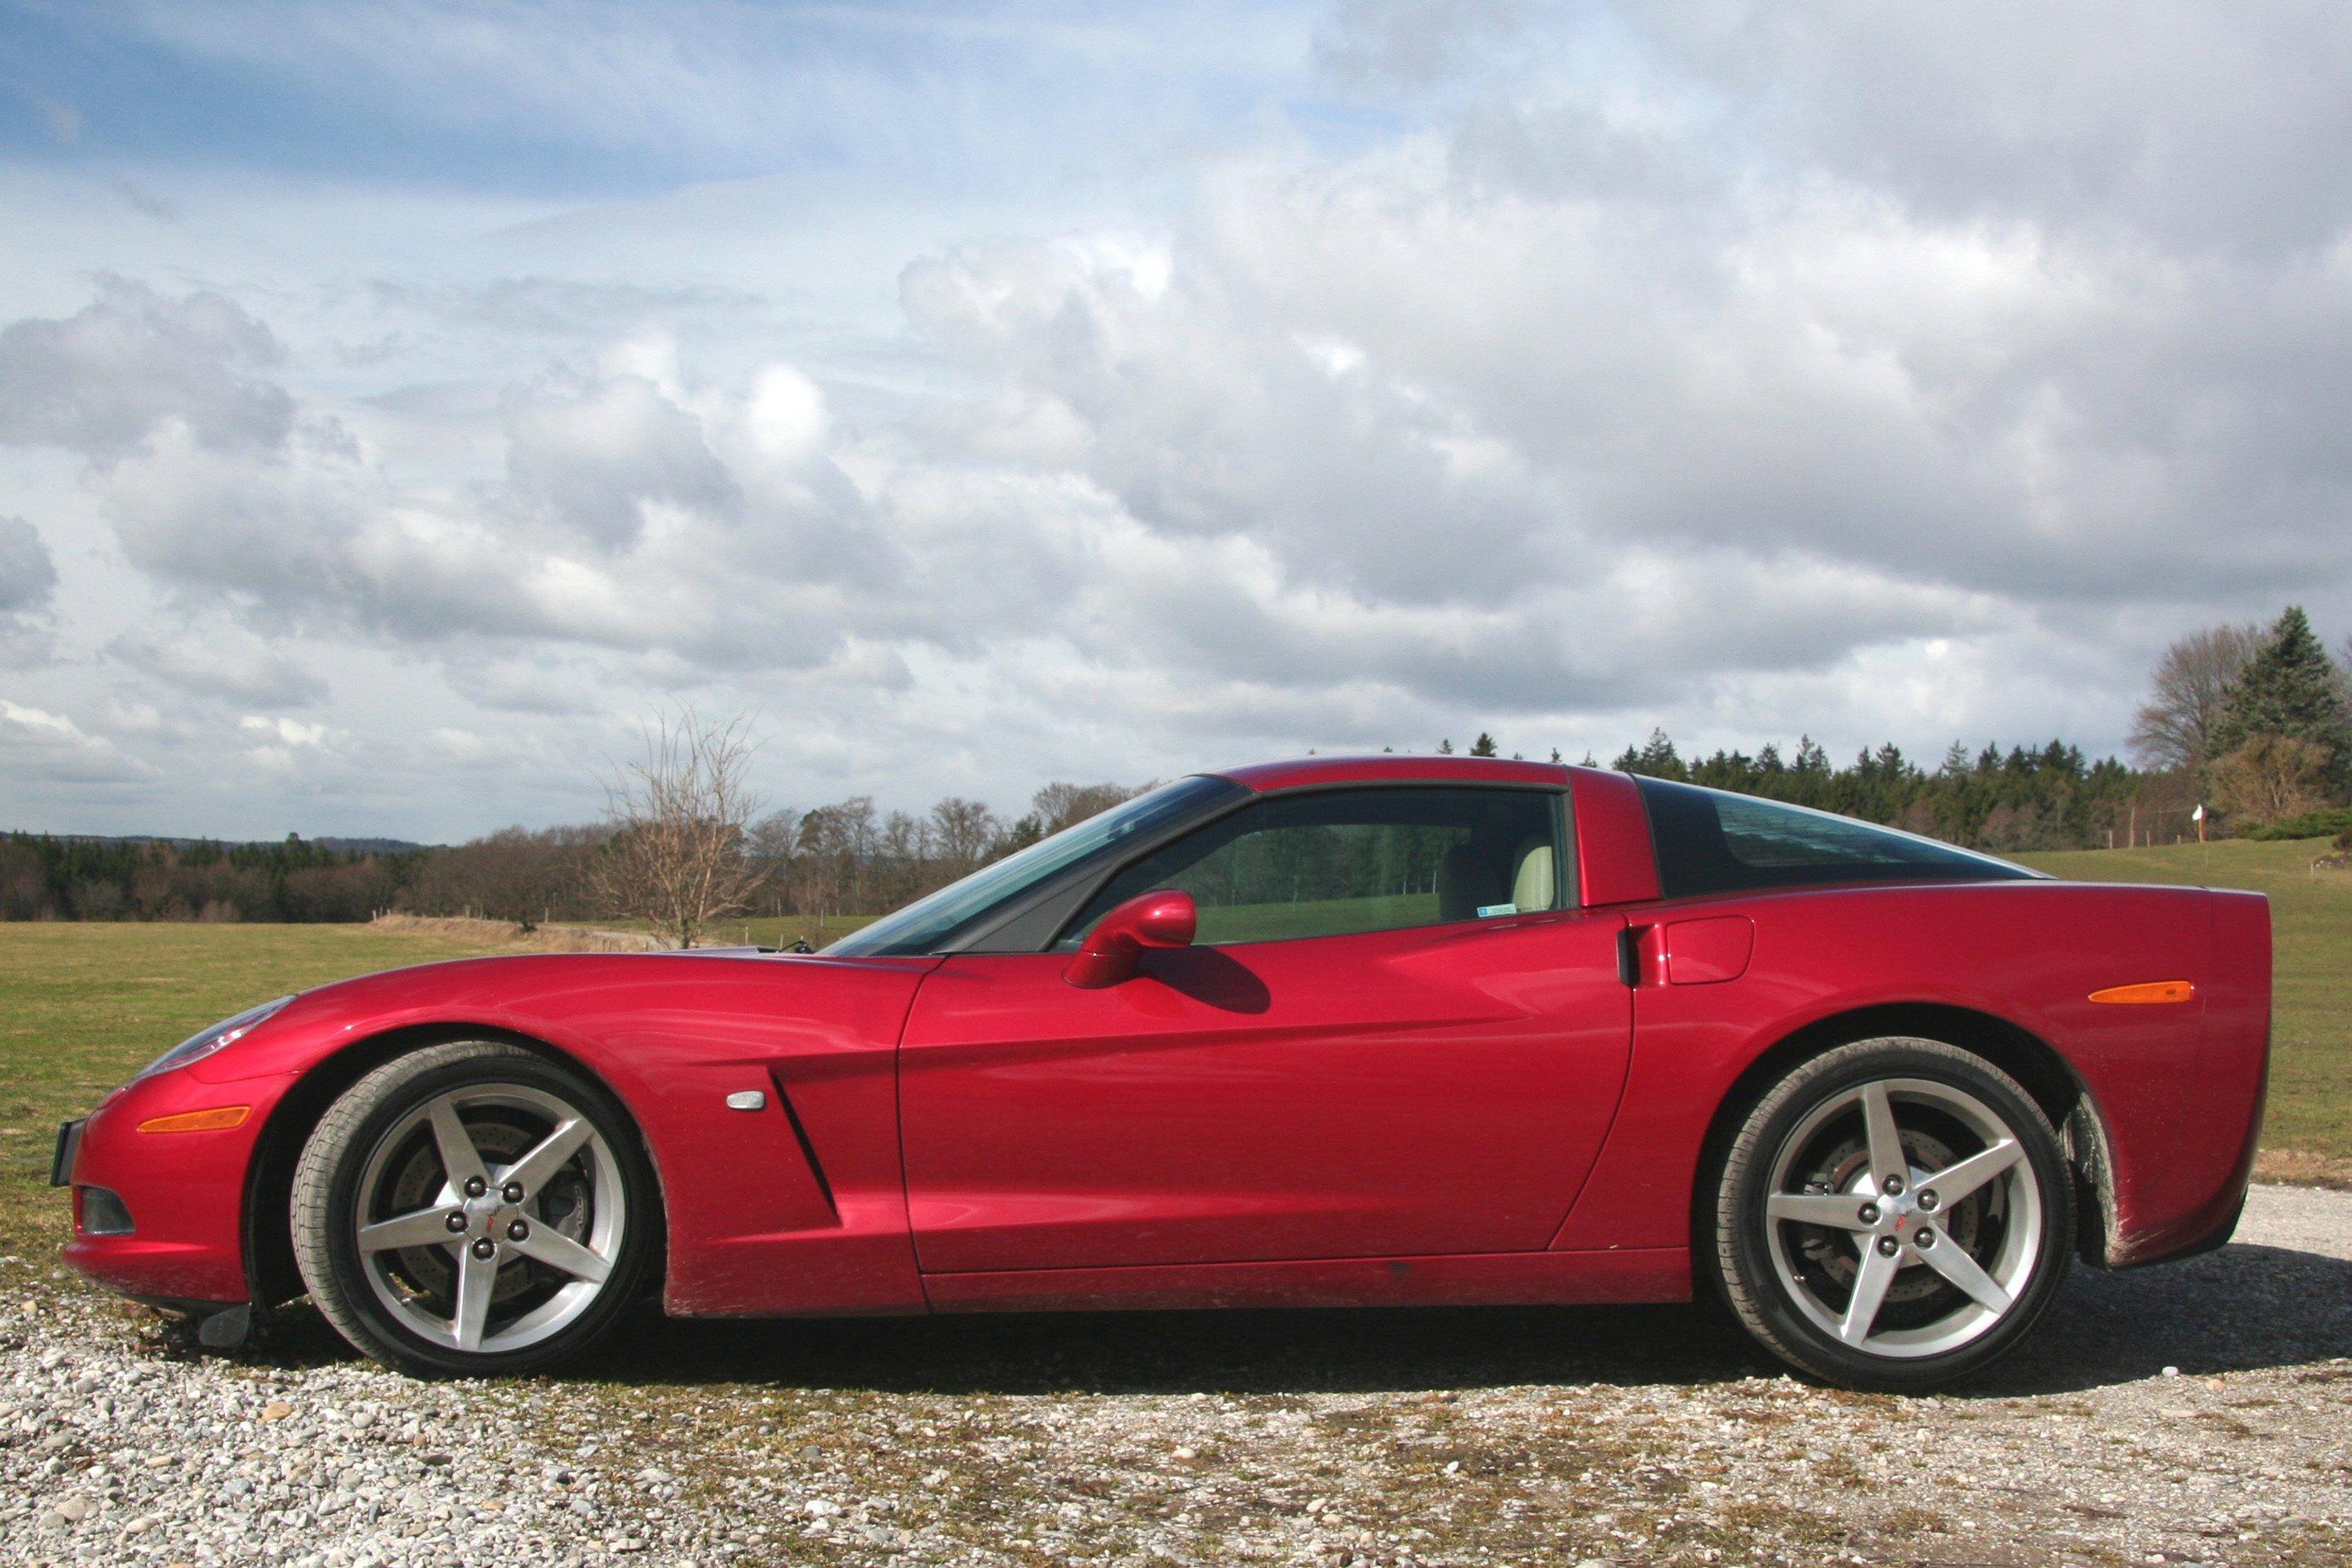 2006 C6 Corvette | Ultimate Guide (Overview, Specs, VIN Info